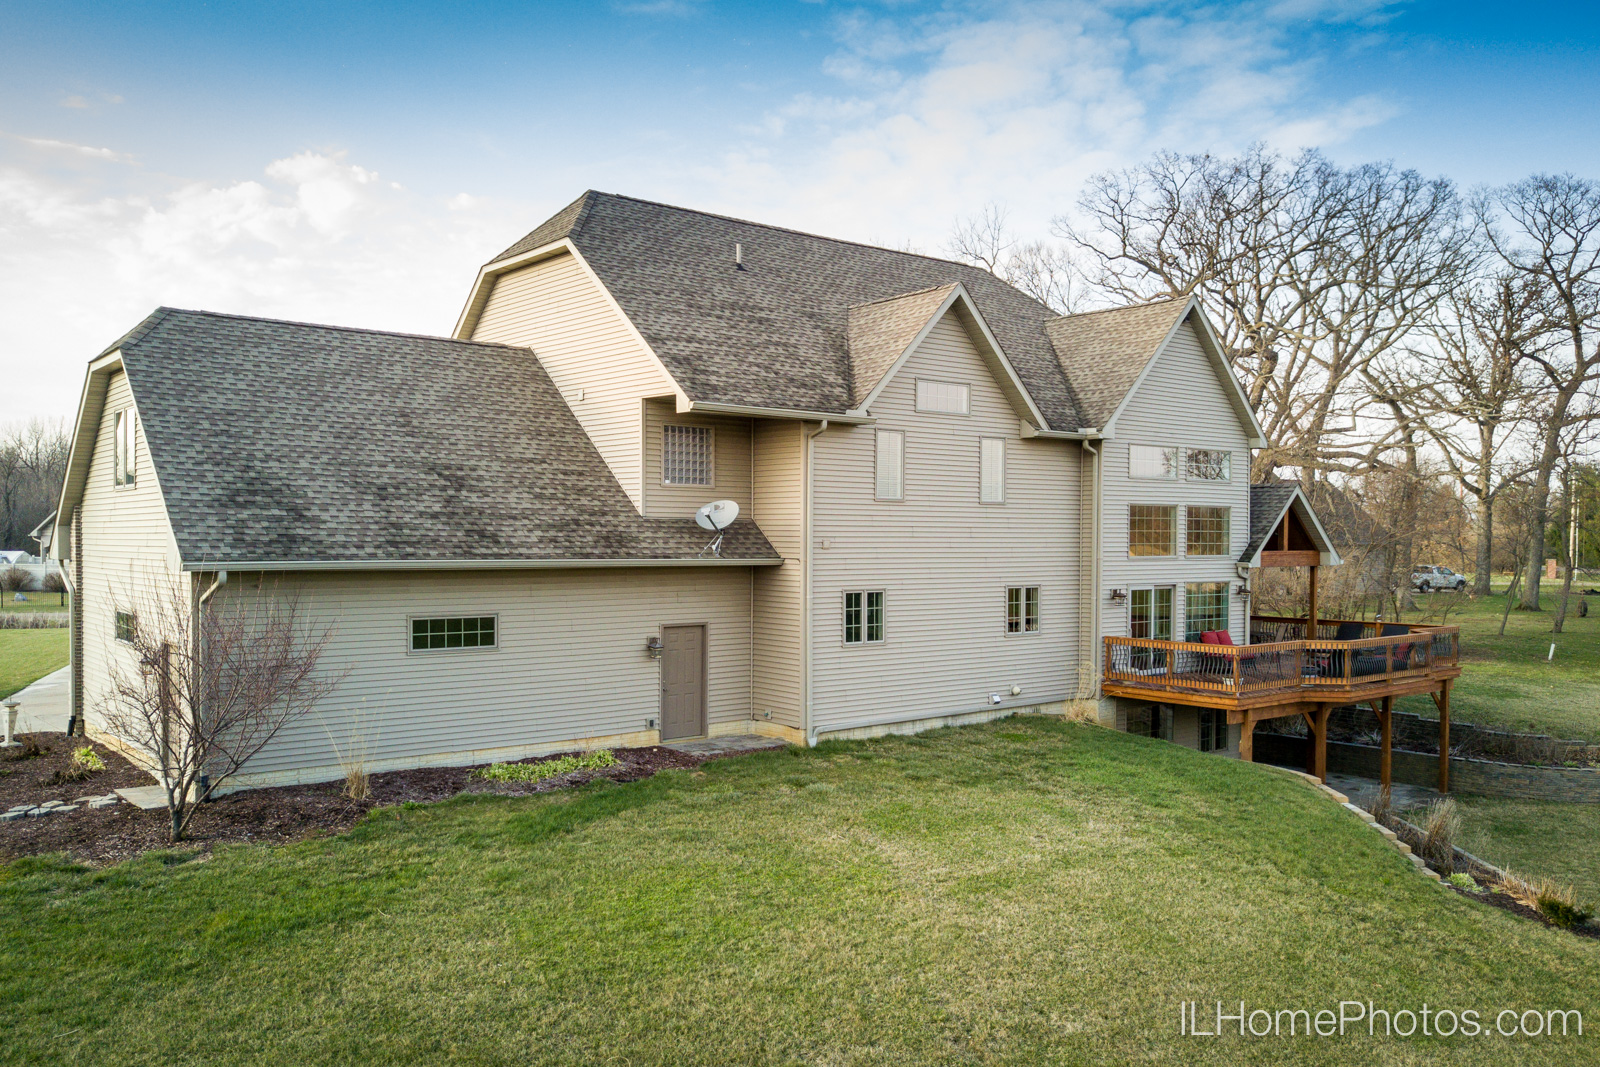 Exterior home drone aerial photograph for real estate :: Illinois Home Photography by Michael Gowin, Lincoln, IL